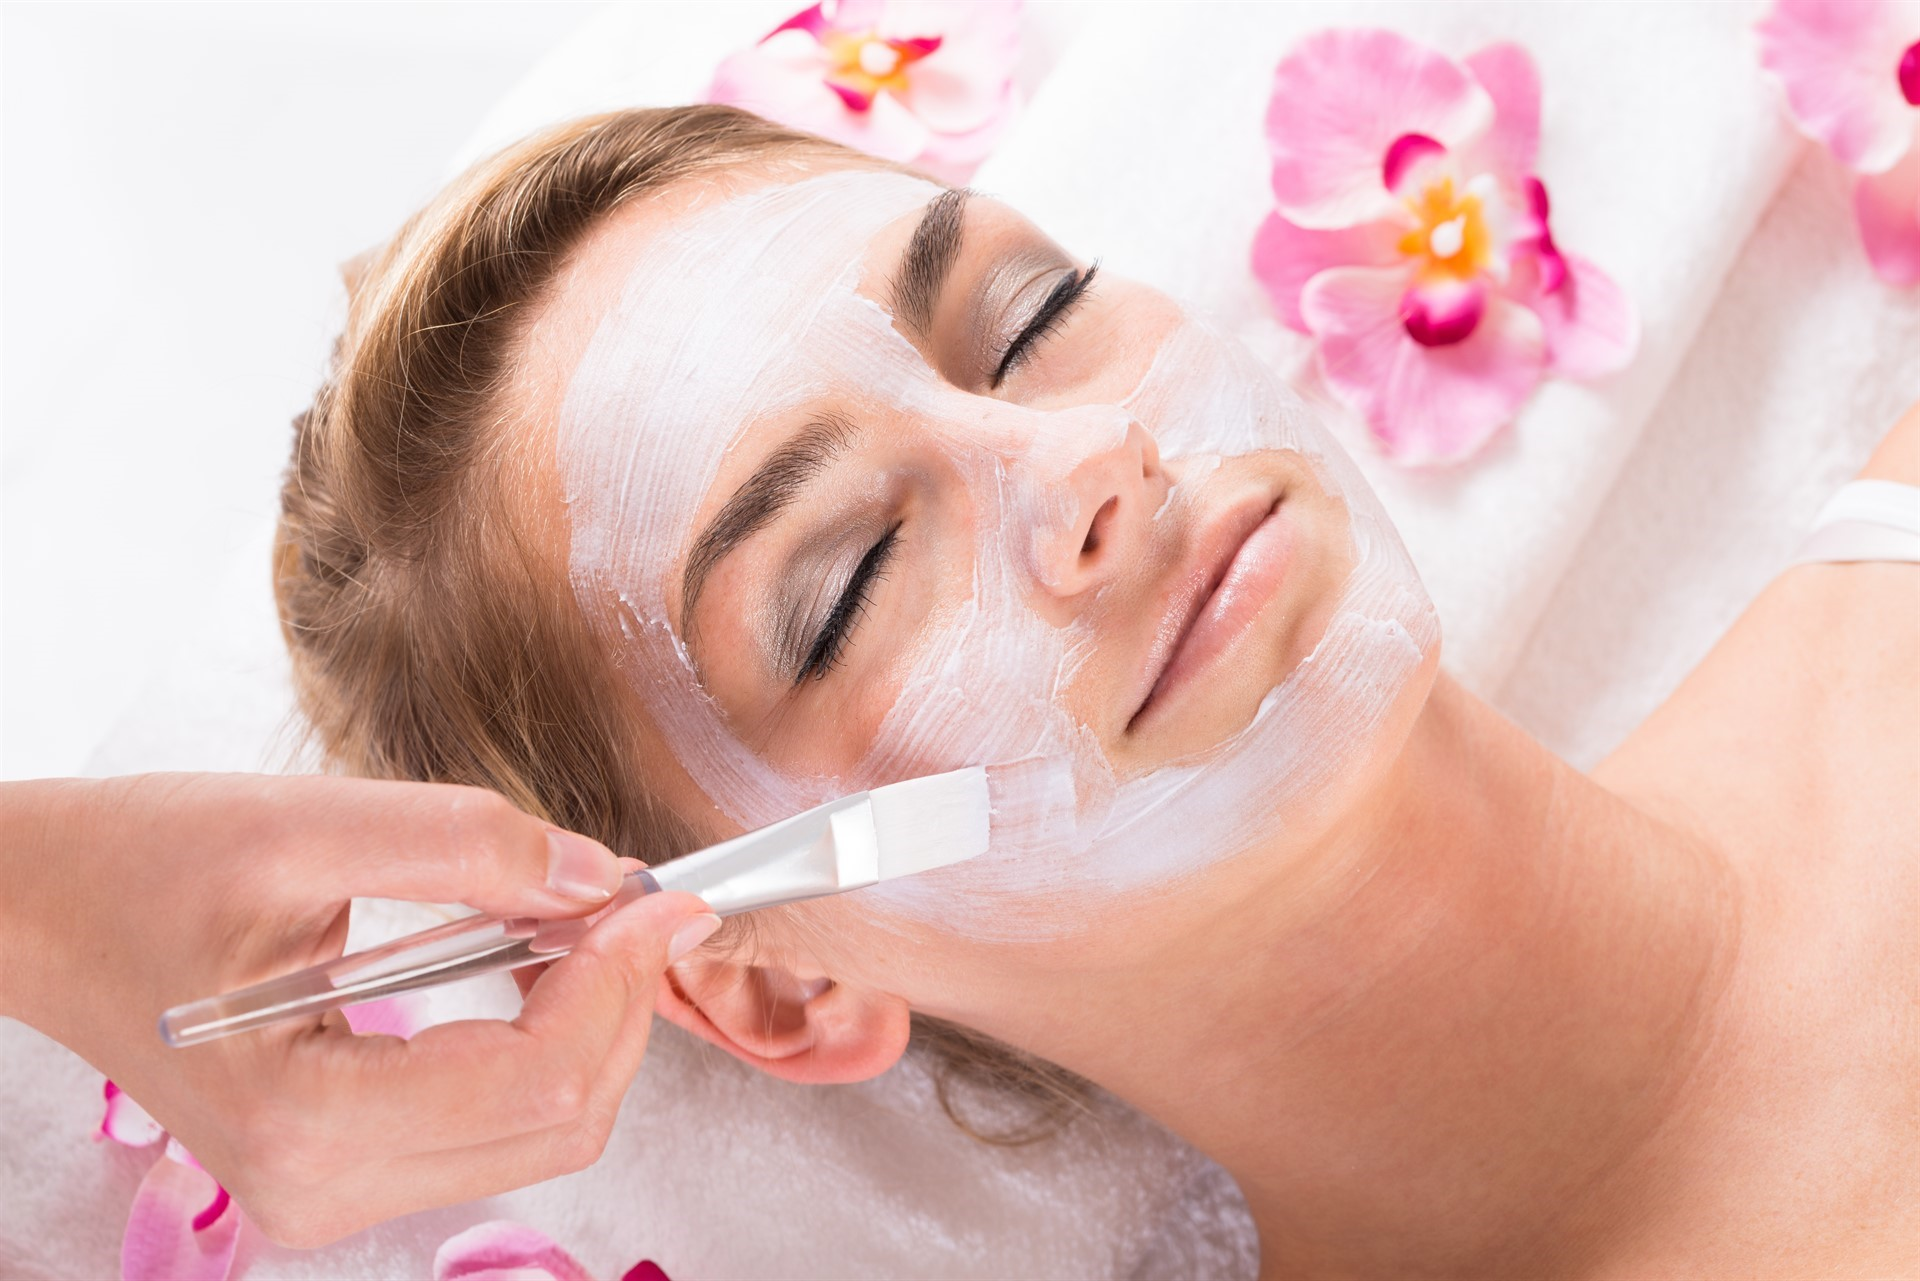 Going a little deeper with chemical peels